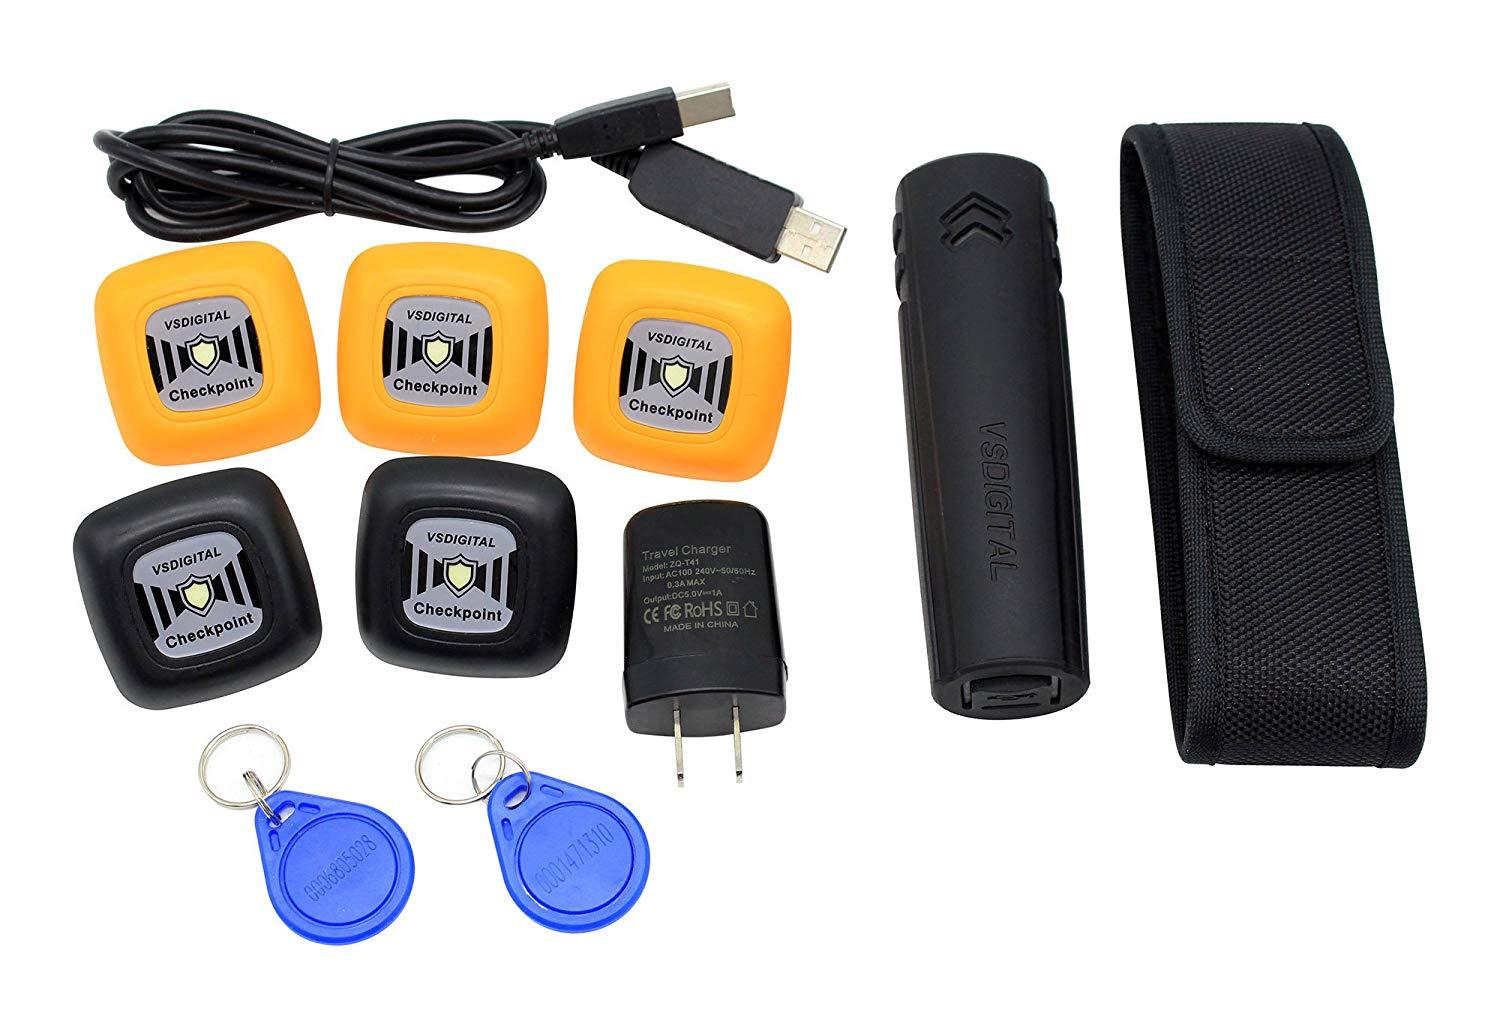 Landcard Guard Tour Patrol System RFID Inductive Security Guard Tour Patrol Monitor with Checkpoint Tag